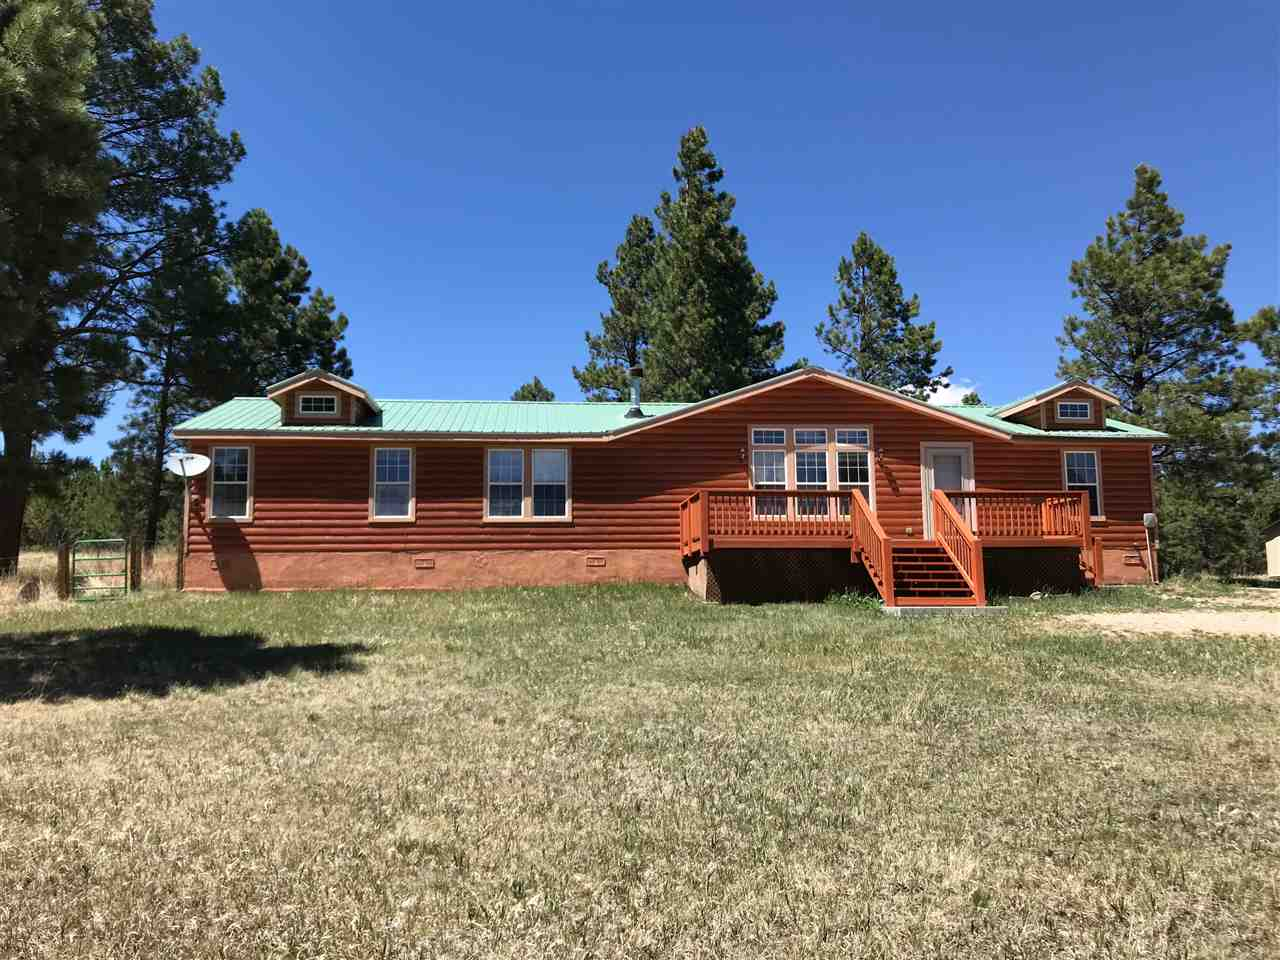 Freshly painted and all new carpet in this 3 bedroom, 2 bath home with views of the Angel Fire Ski area.  Easy access driveway, located off the Resort, no Resort dues.  Log siding and upgrades with a great floor plan.  Storage shed in the backyard.  Just minutes to ski and golf.